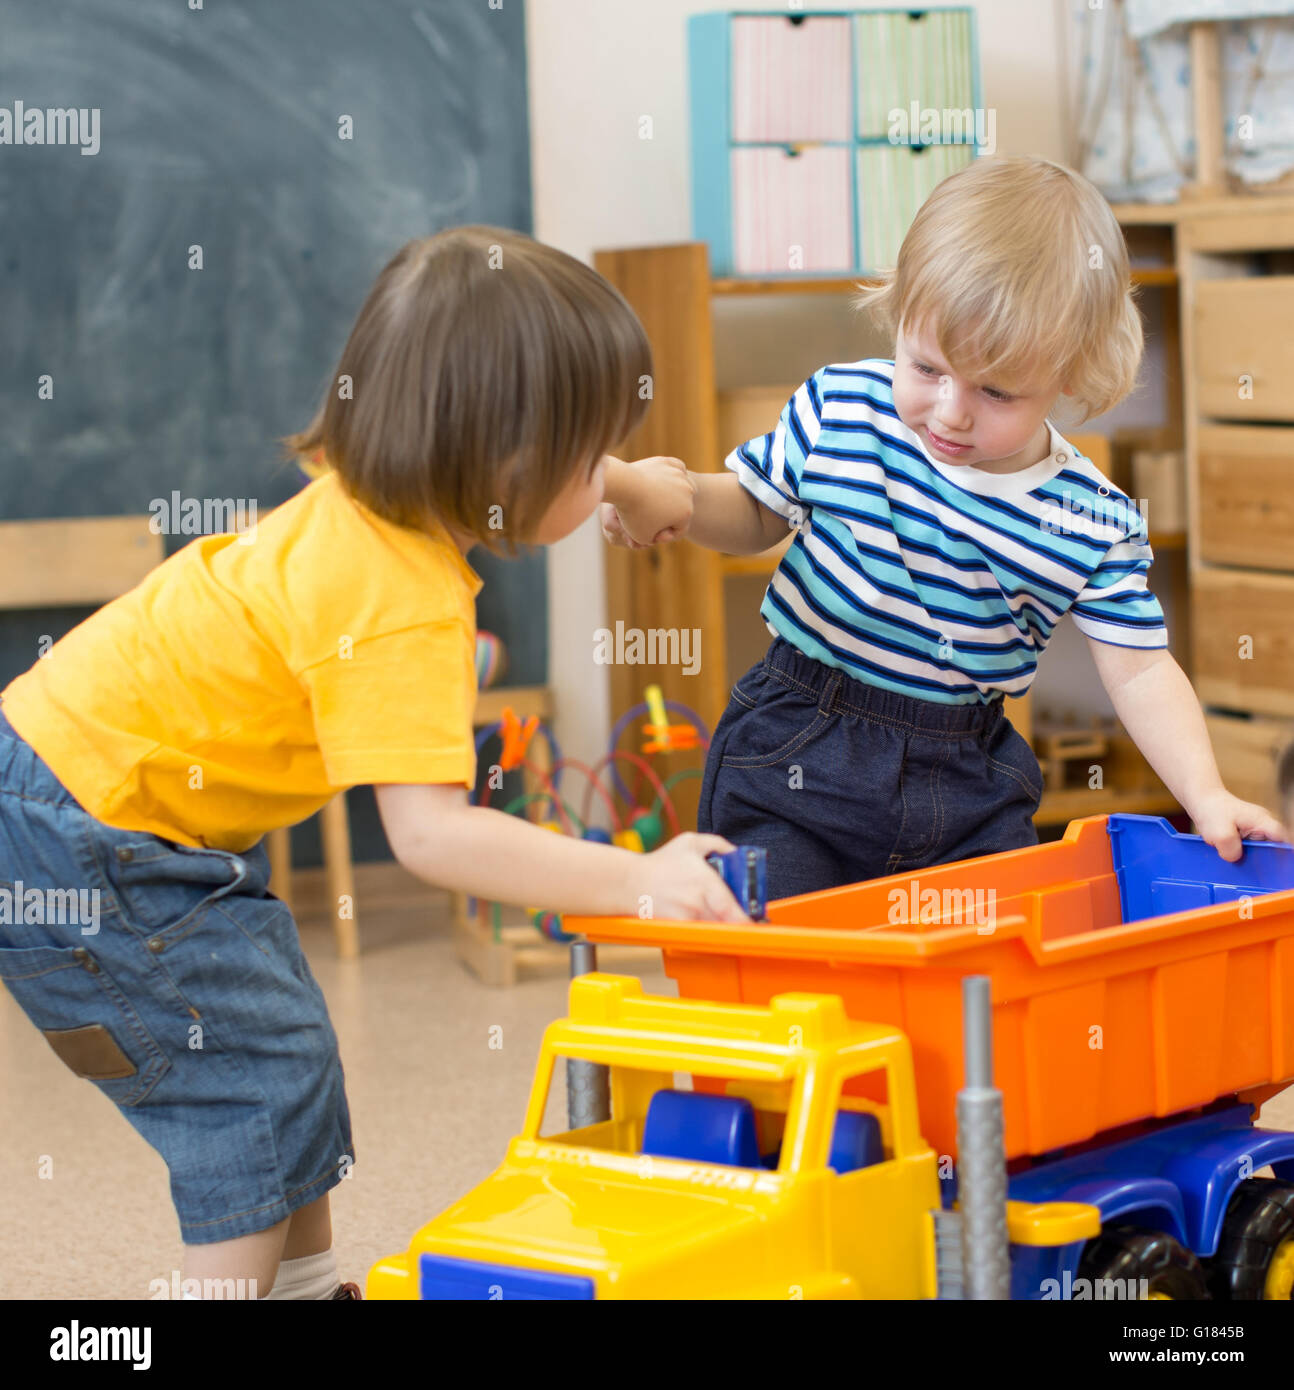 two kids conflict or struggling for toy truck in kindergarten - Stock Image